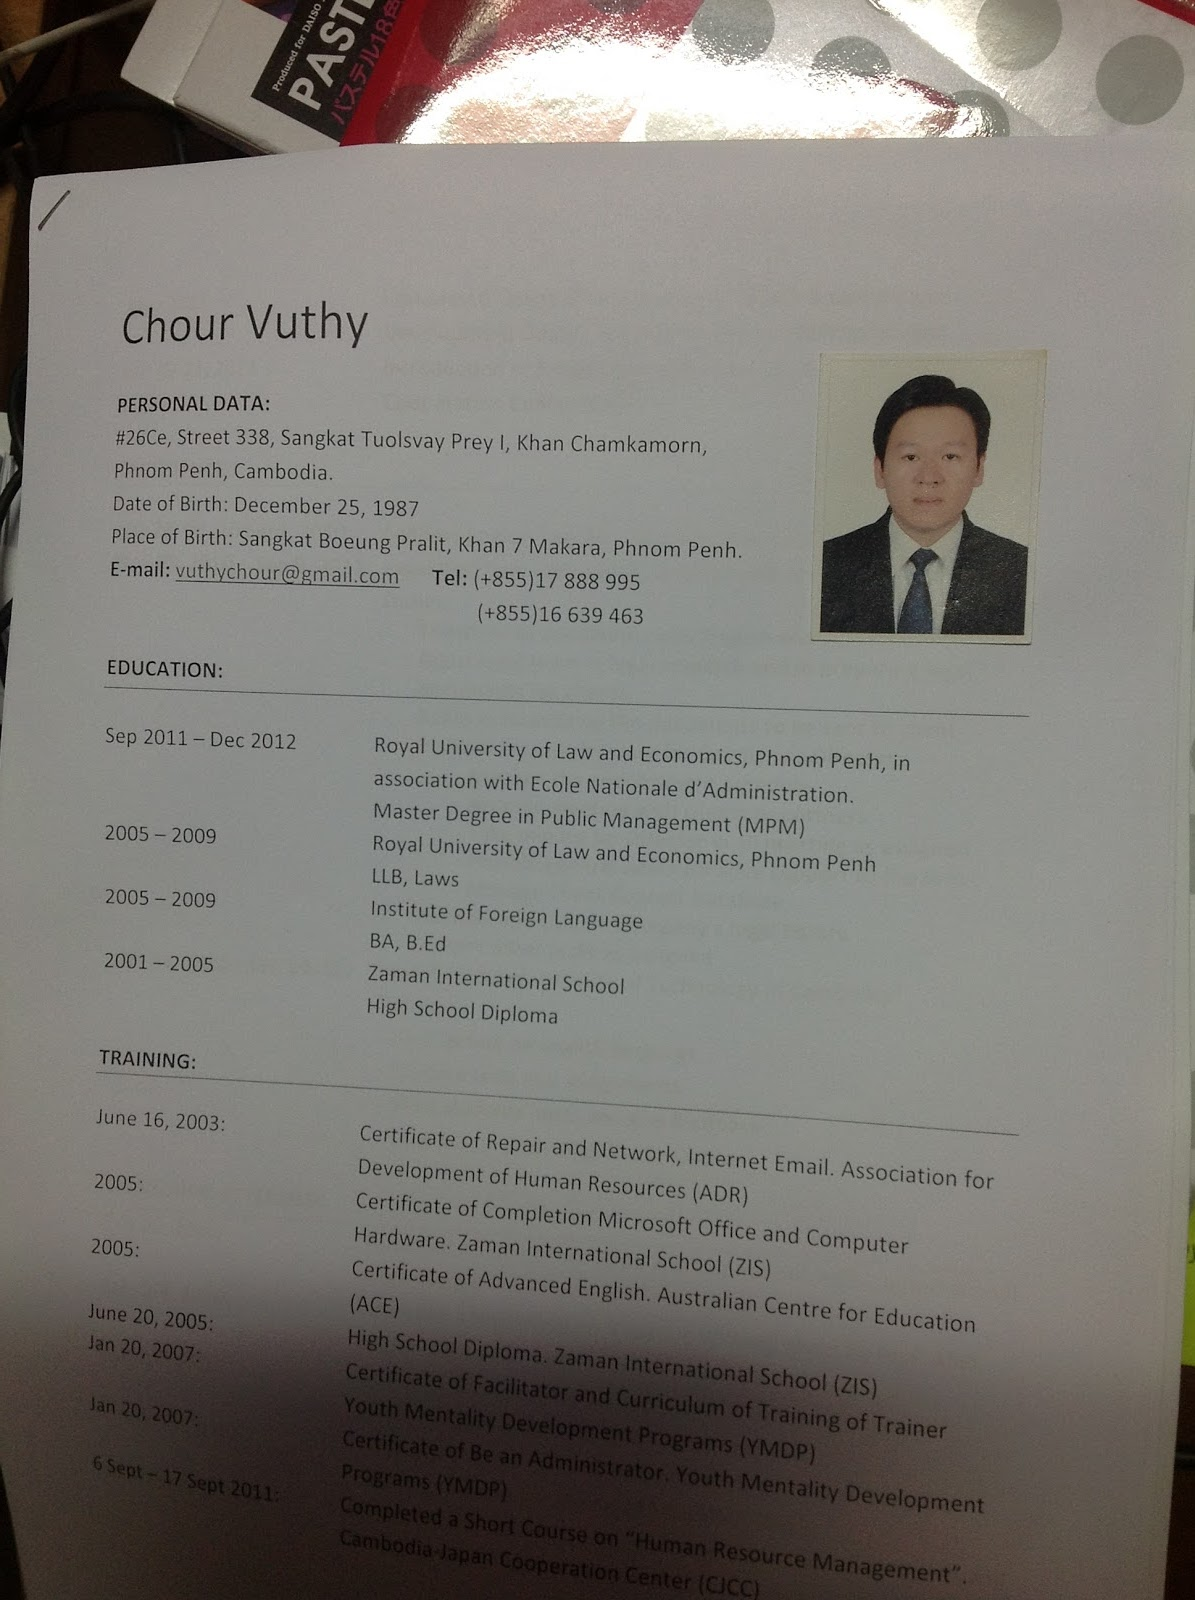 here is my cv attached